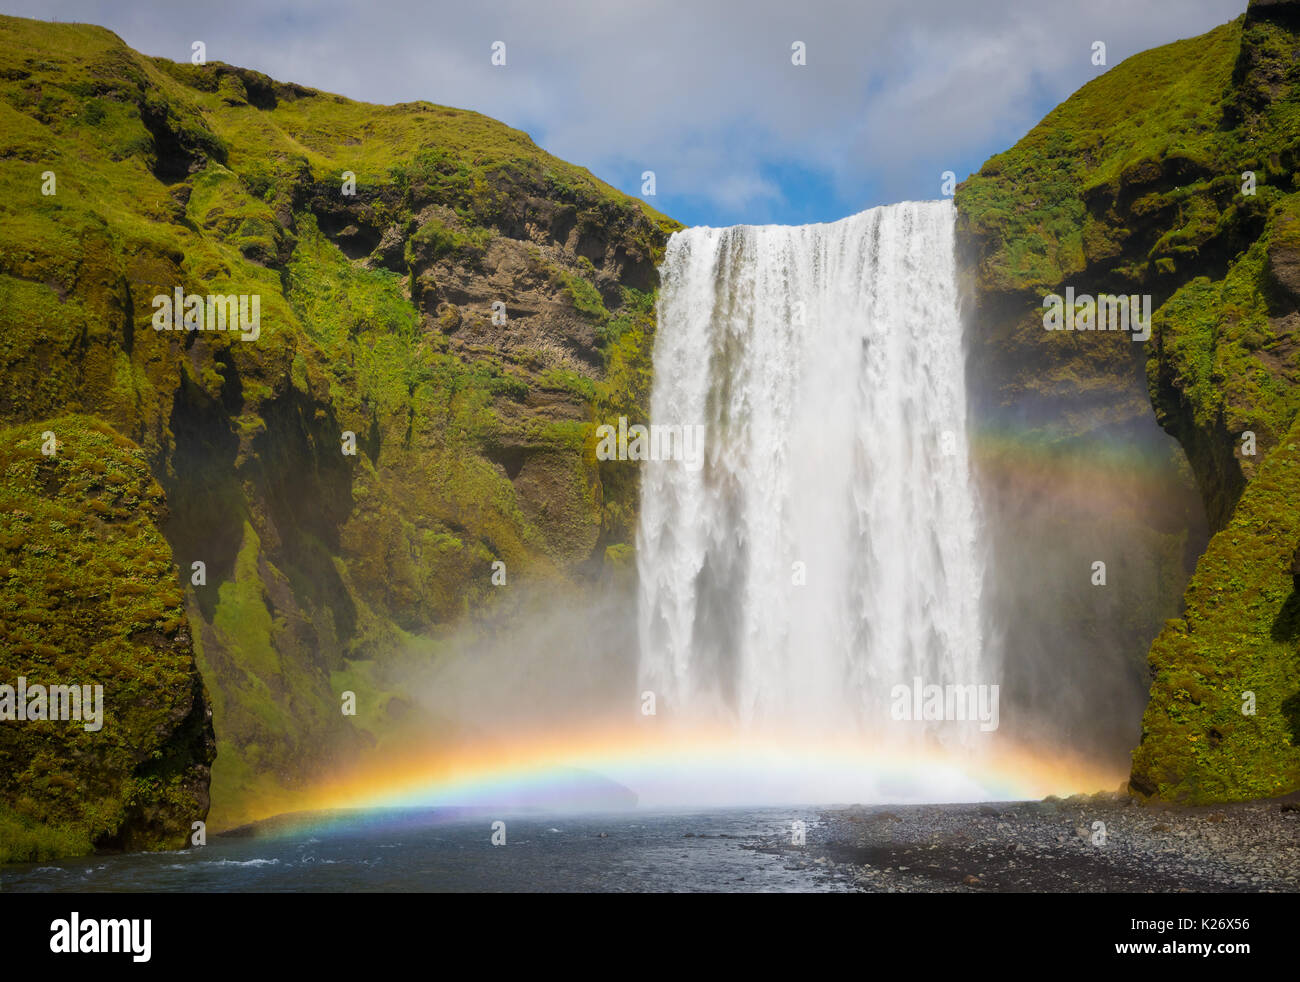 Skogafoss waterfall in the Southern Region of Iceland - Stock Image